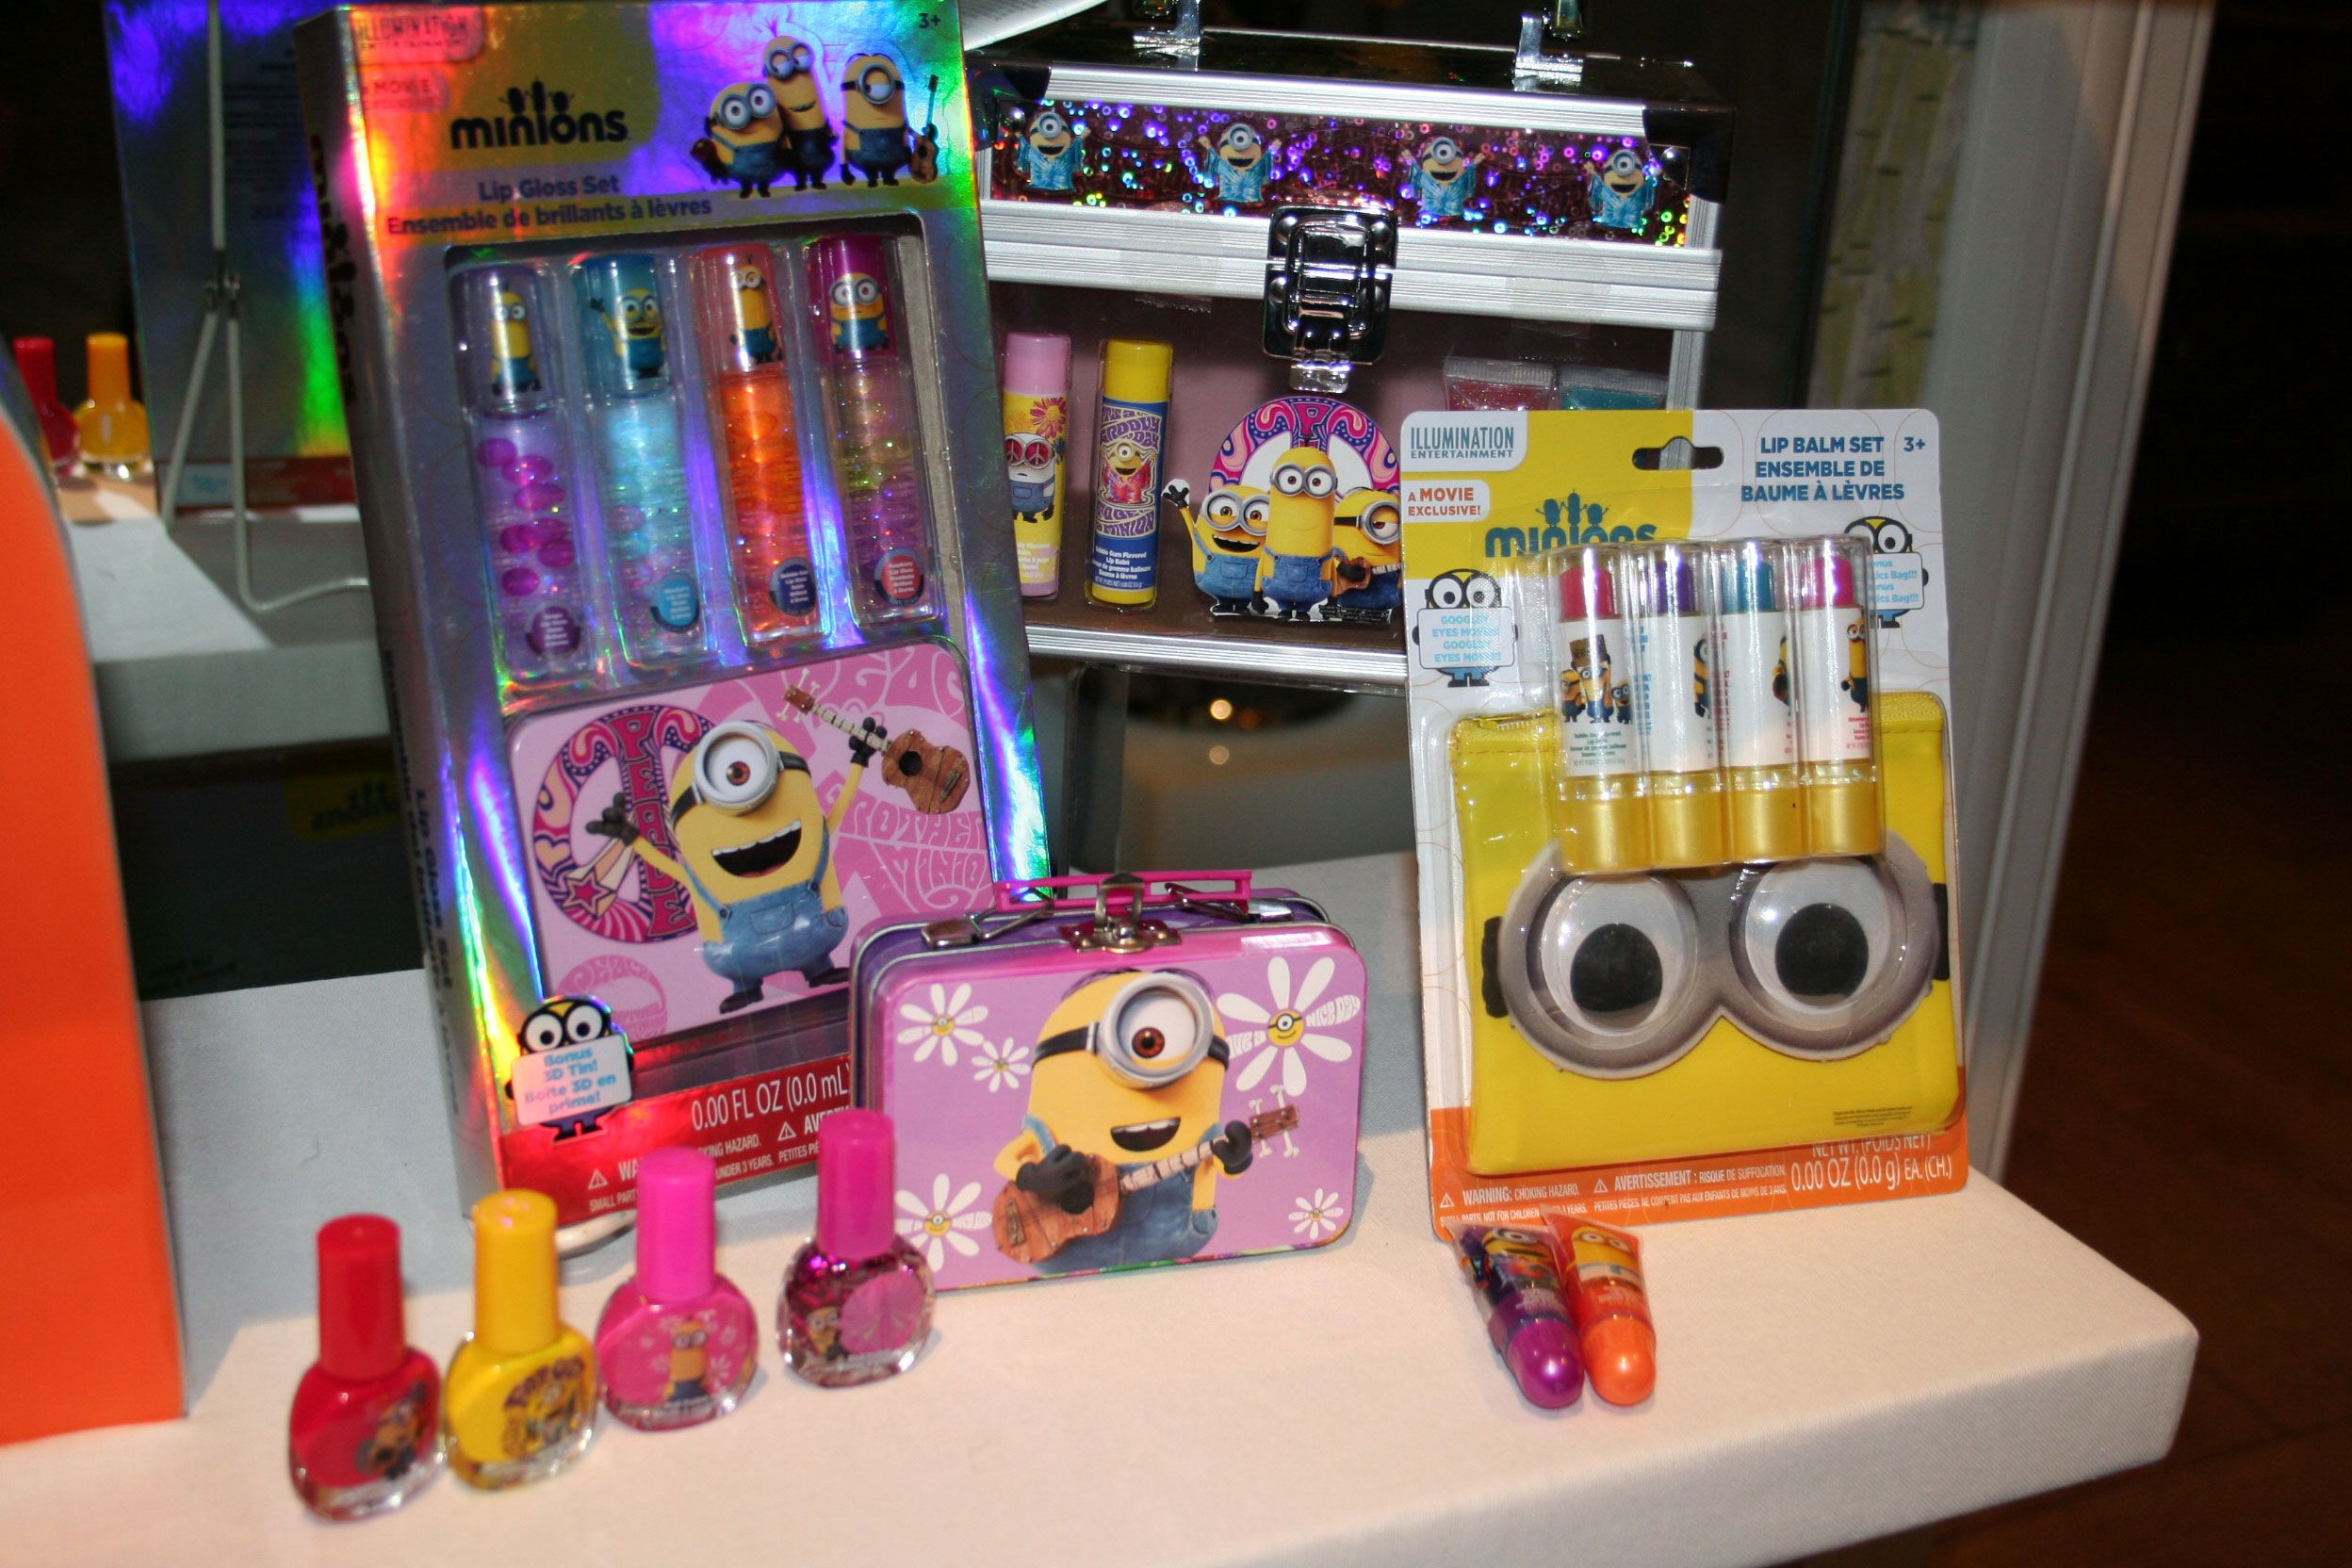 Minion Toys And Games : Minions toys games apparel from universal